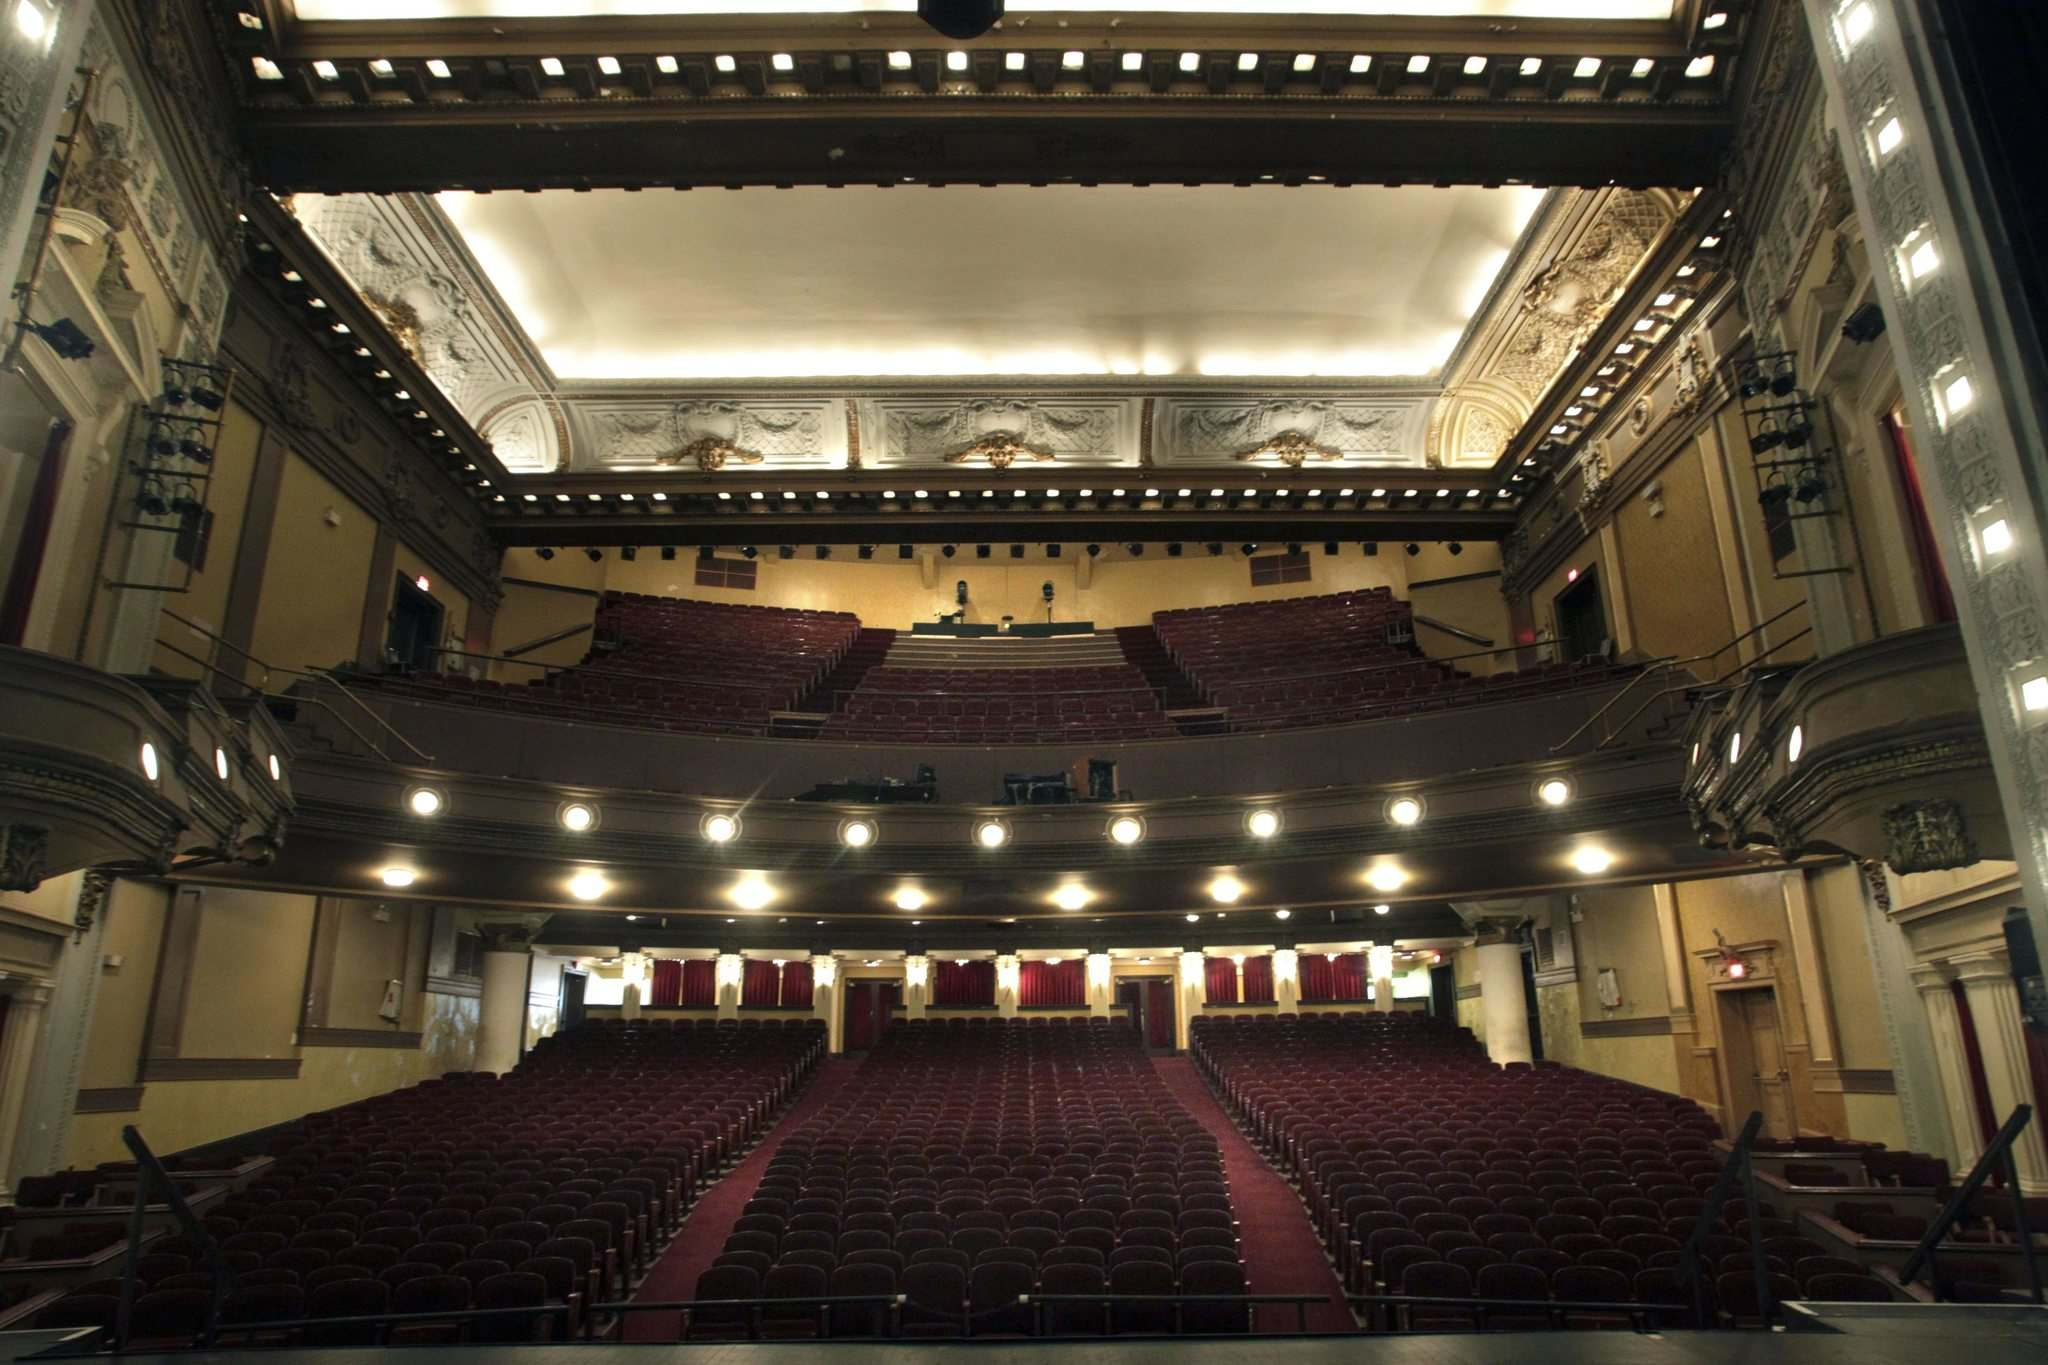 WAYNE GLOWACKI / WINNIPEG FREE PRESS FILES</p><p>The Pantages Theatre, which had been sold to a development company, will return to being a performing arts centre.</p>